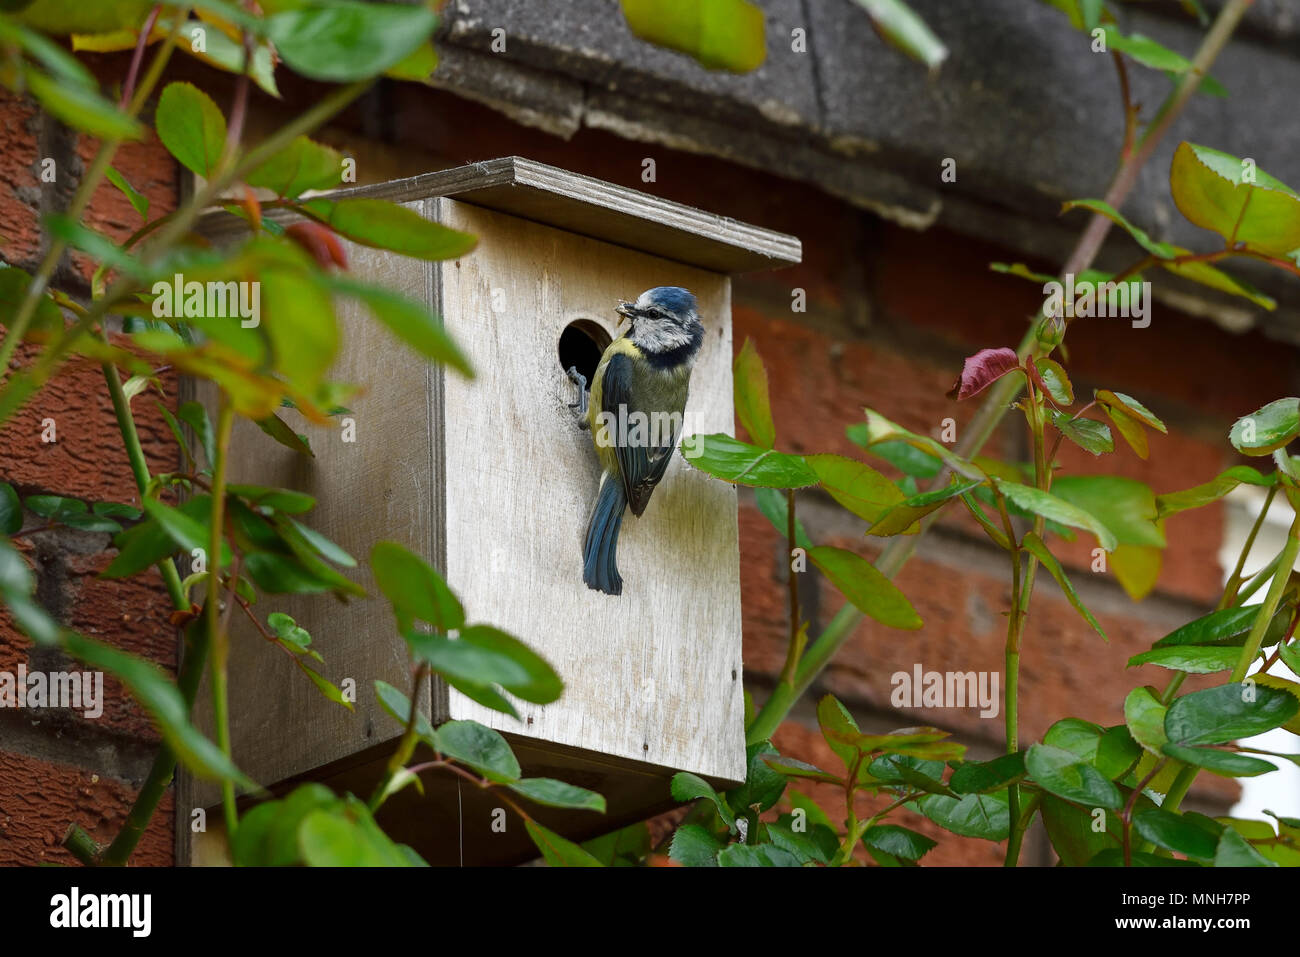 Northwich, Cheshire, UK. 17th May 2018. A blue tit arrives with food at a wooden nesting box on the side of a house. ©Andrew Paterson/Alamy Live News - Stock Image